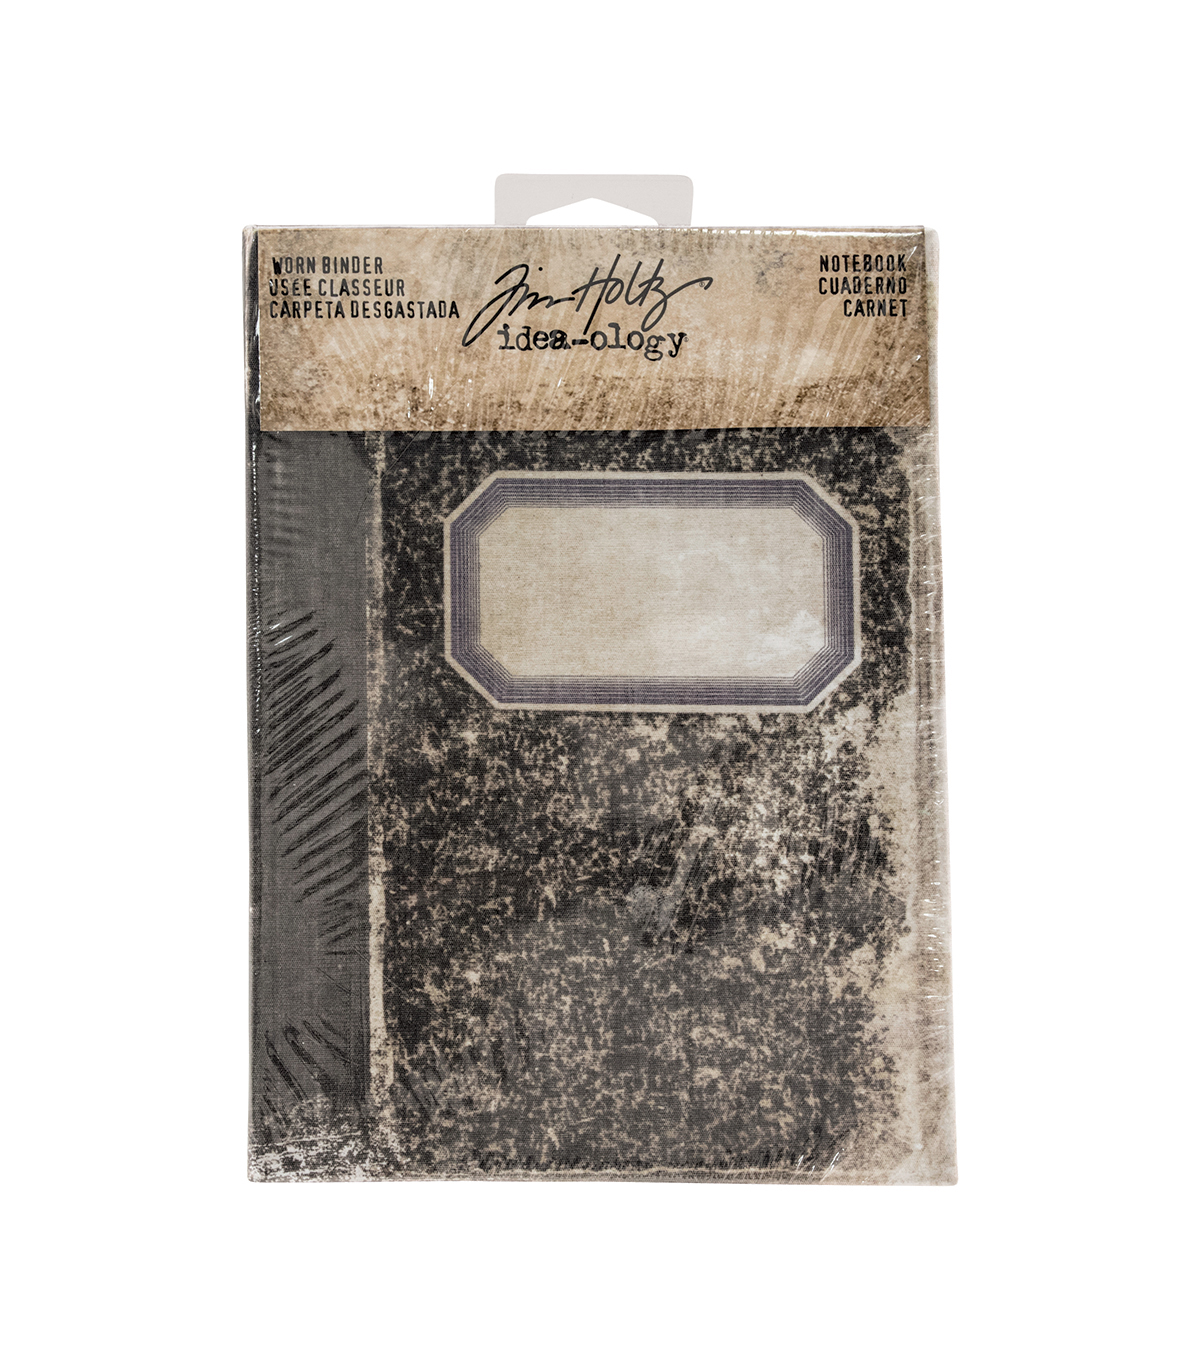 Tim Holtz® Idea-ology® Notebook Worn Binder